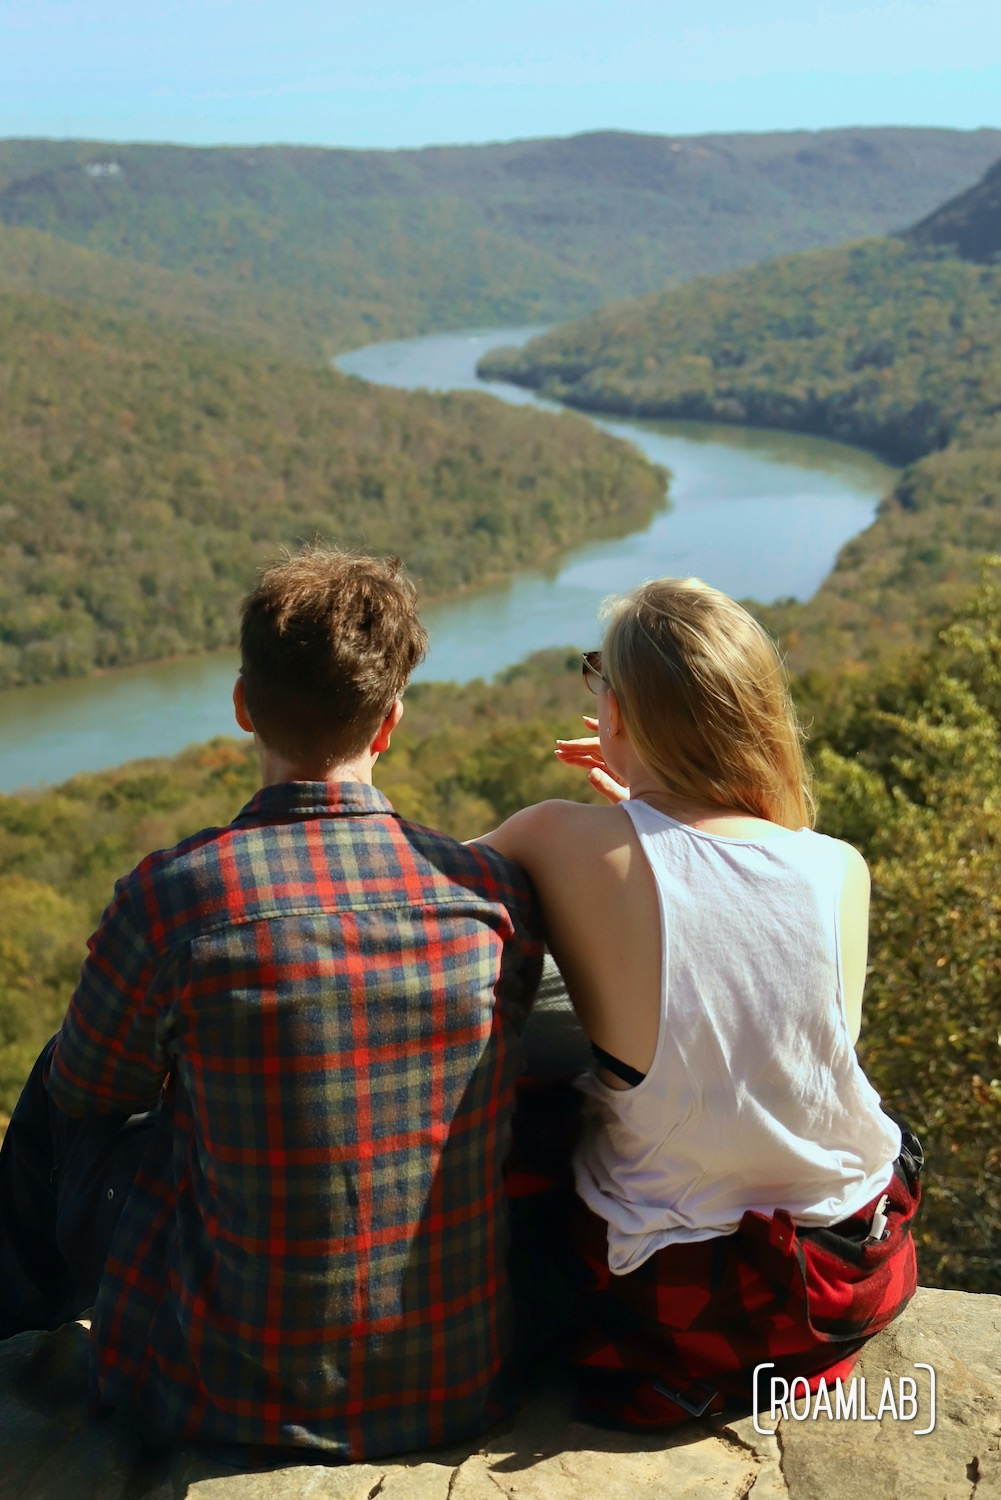 Man and woman looking out over the Tennessee River Gorge of Prentice Cooper State Park from Snoopers Rock.